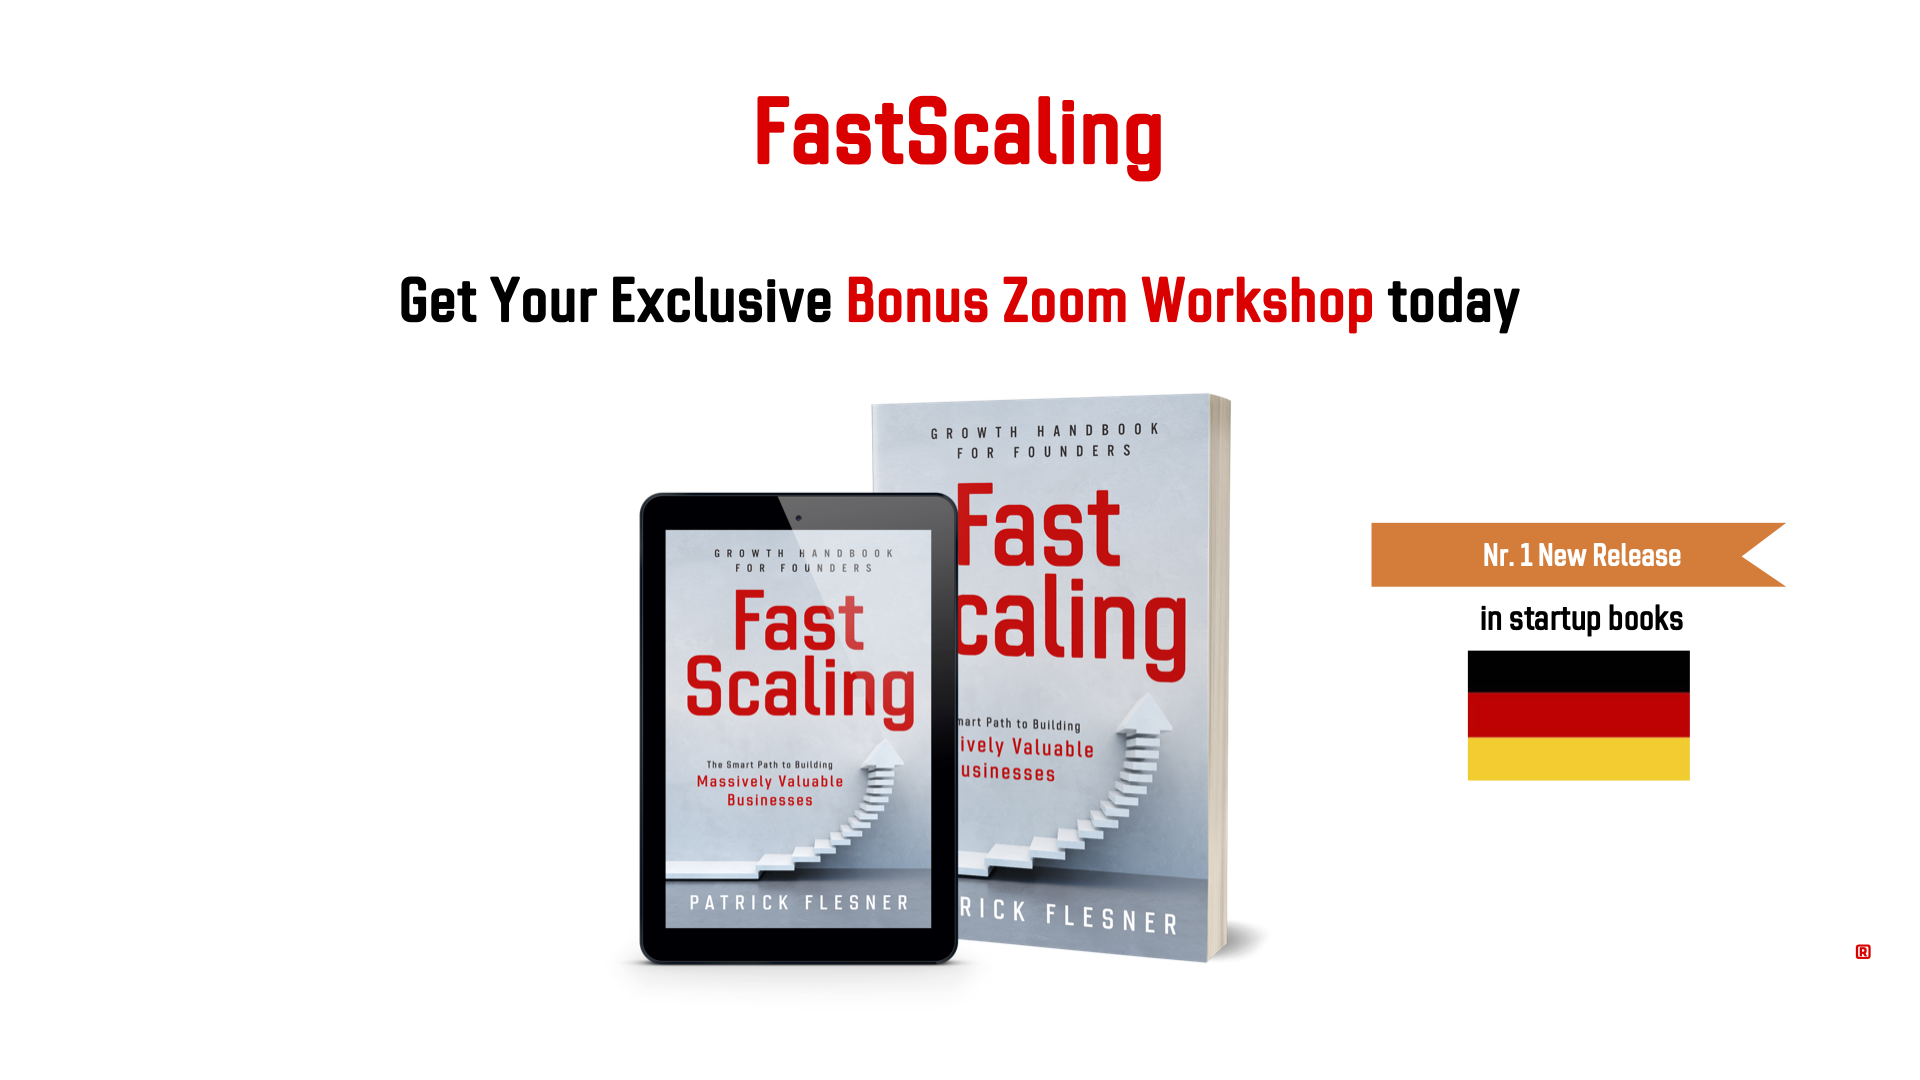 FastScaling - Limited Number of Exclusive Bonus Workshops